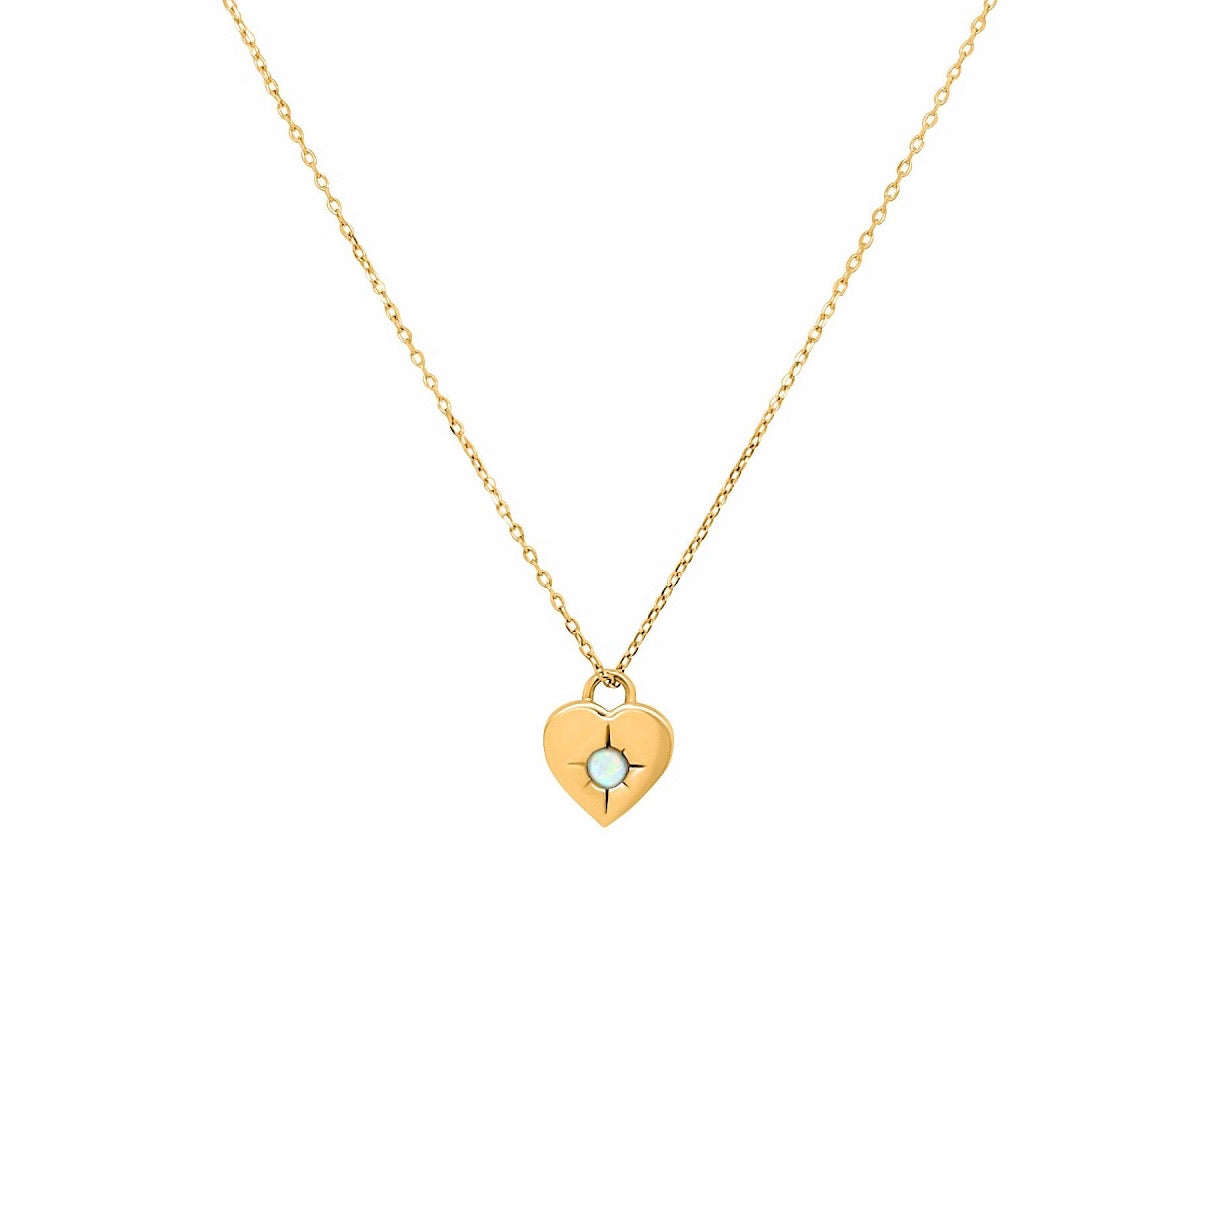 Truffle Necklace - Solid Gold